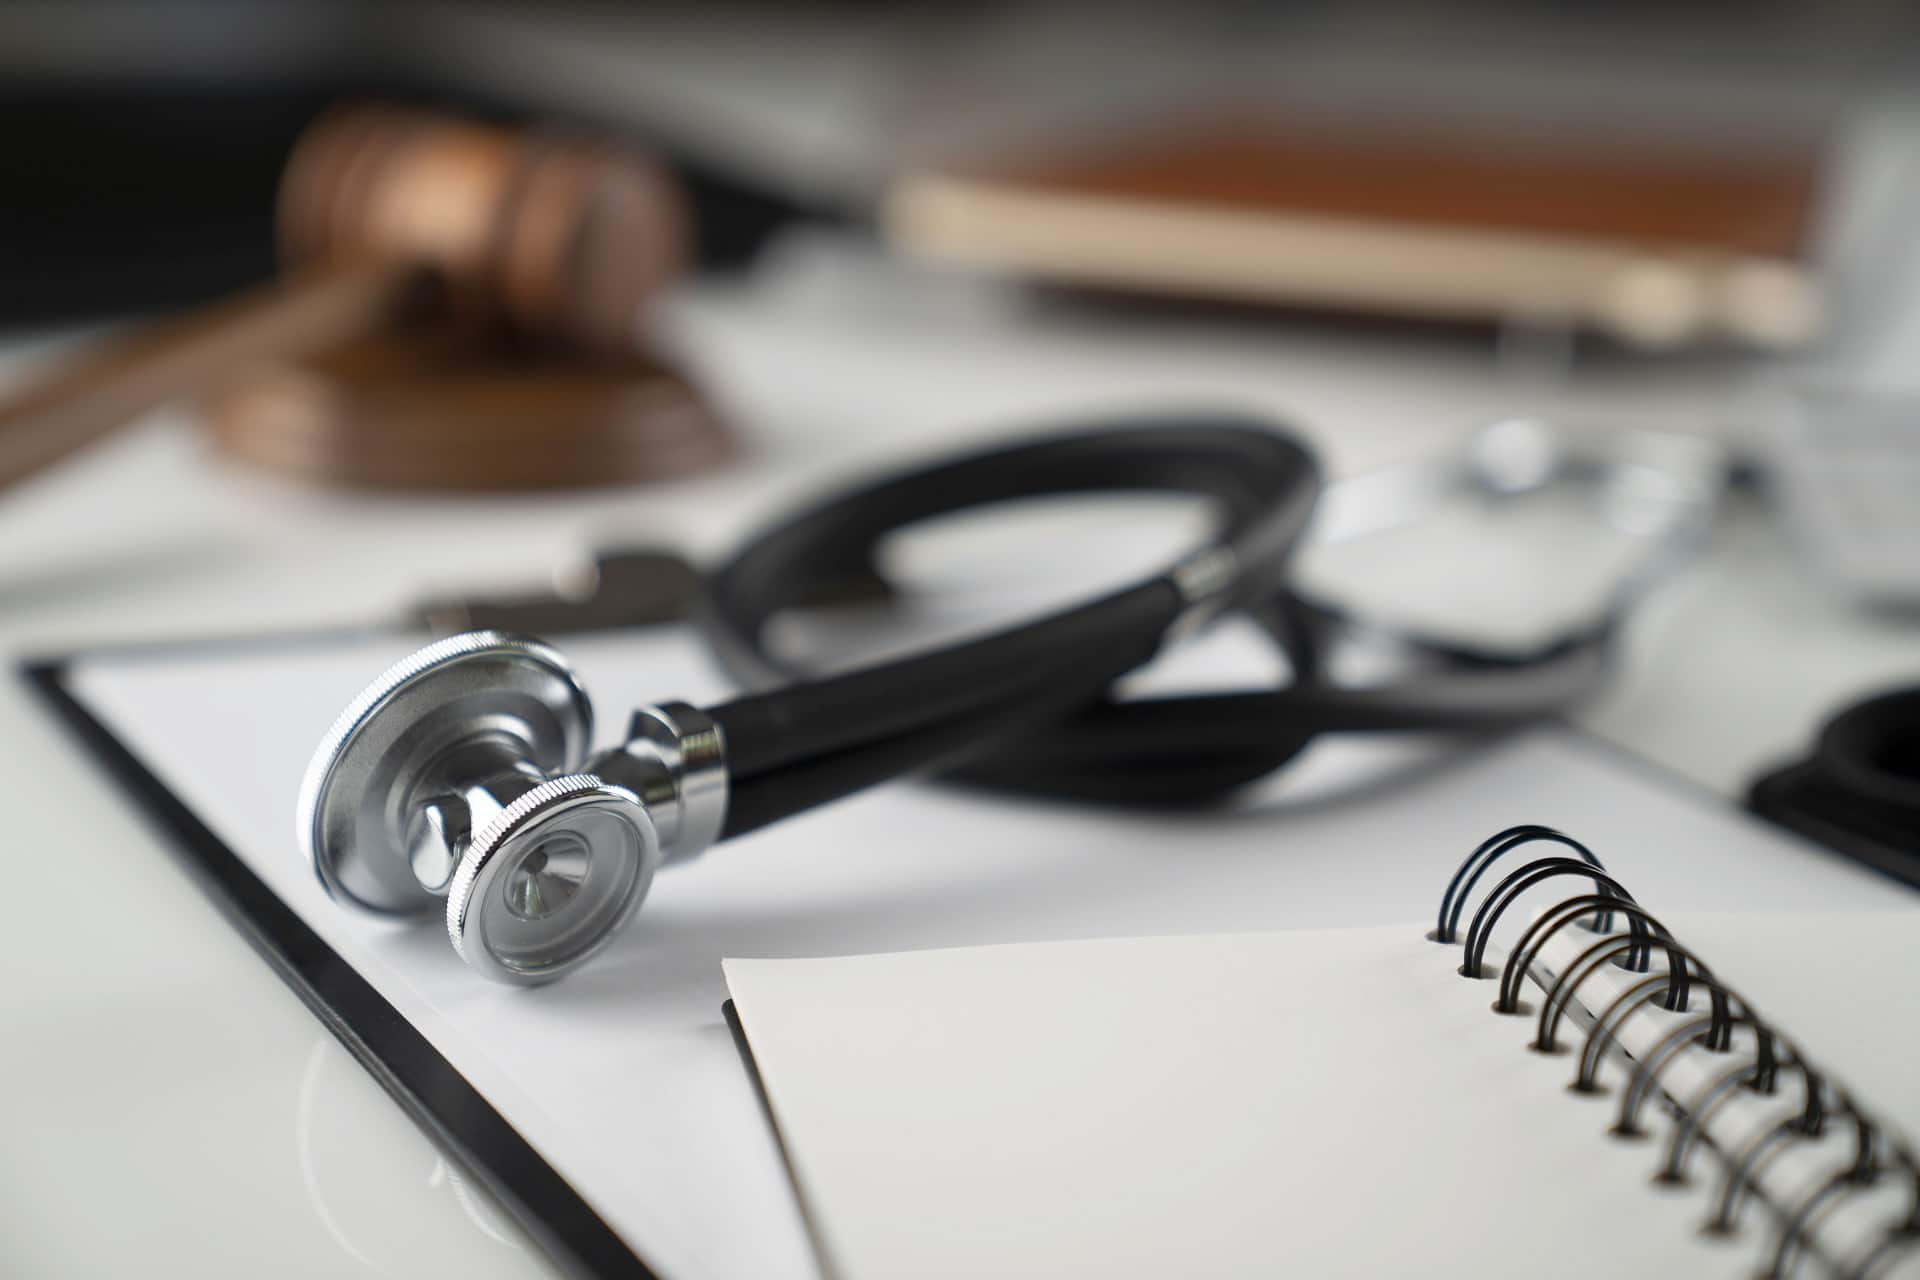 Stethoscope atop papers with blurred out gavel and block in background